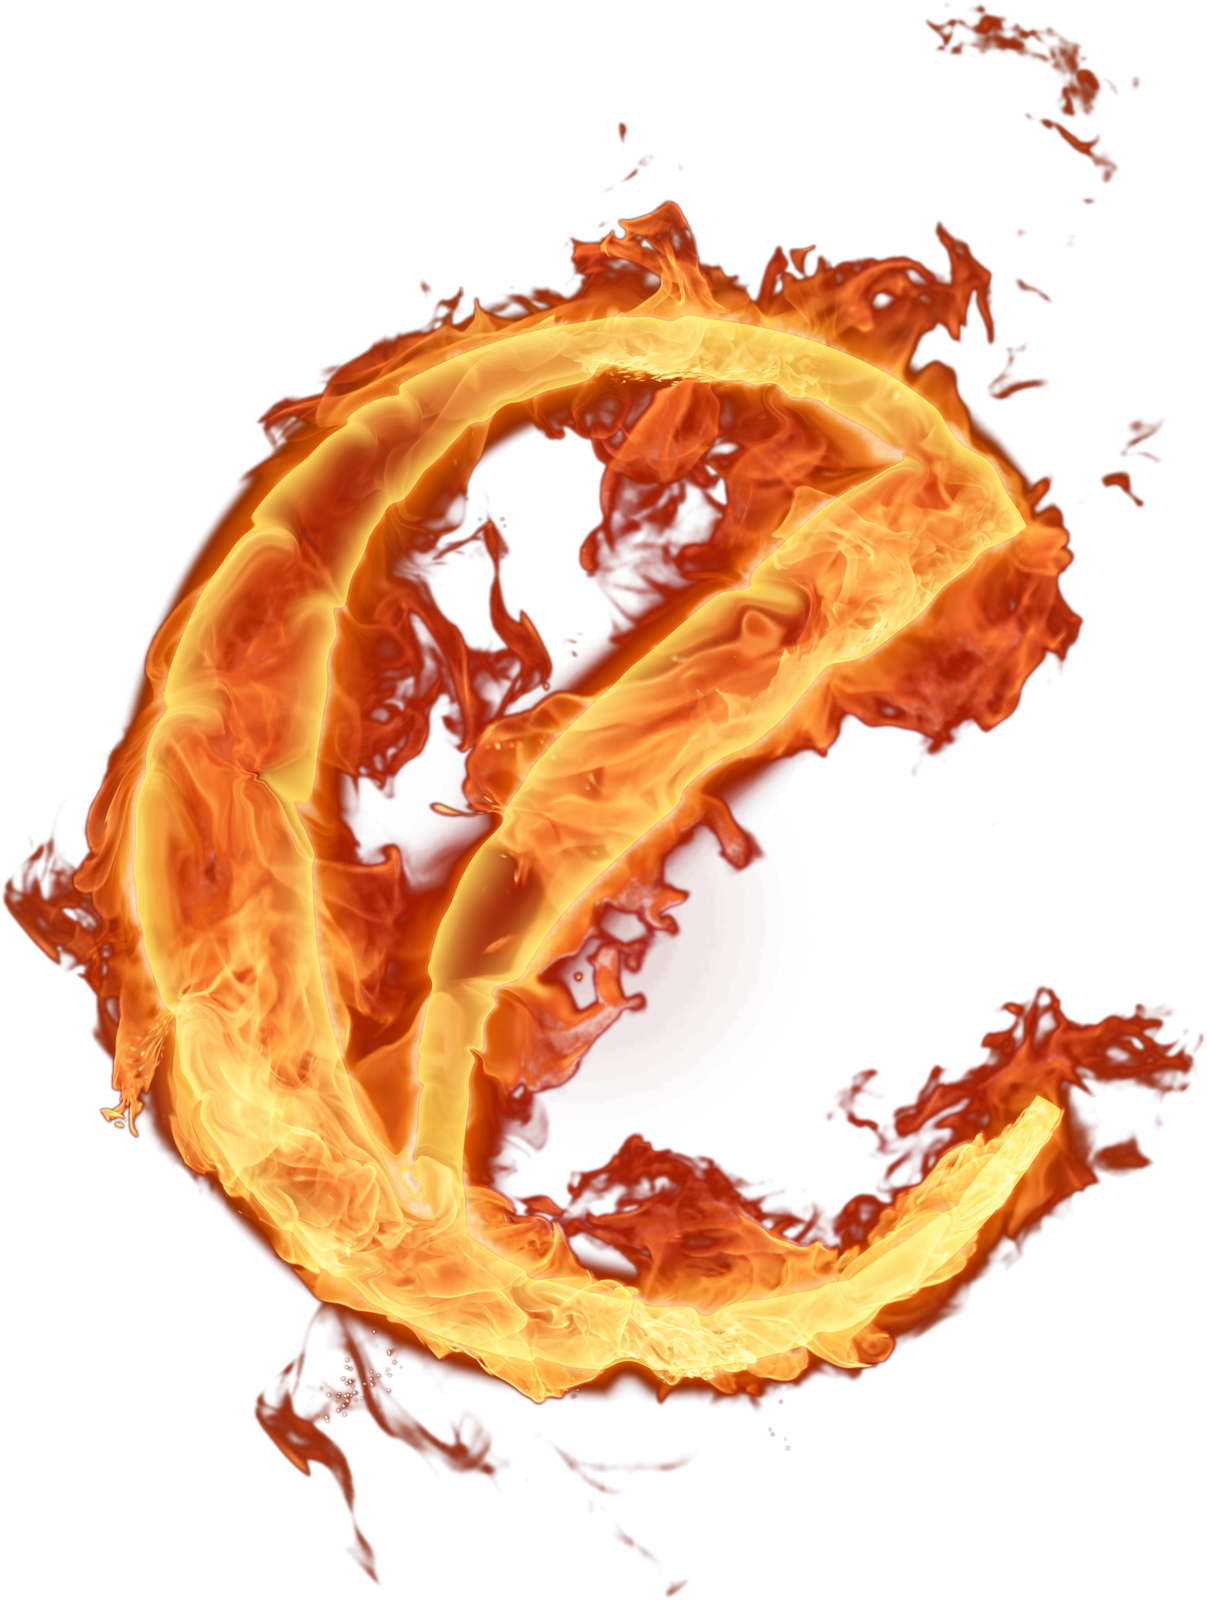 Flaming money clipart clip art letras+png+FOGO+CHAMA+FIRE+LETTER+ALFABETO+EFEITO+PHOTOSHOP+(5).PNG ... clip art